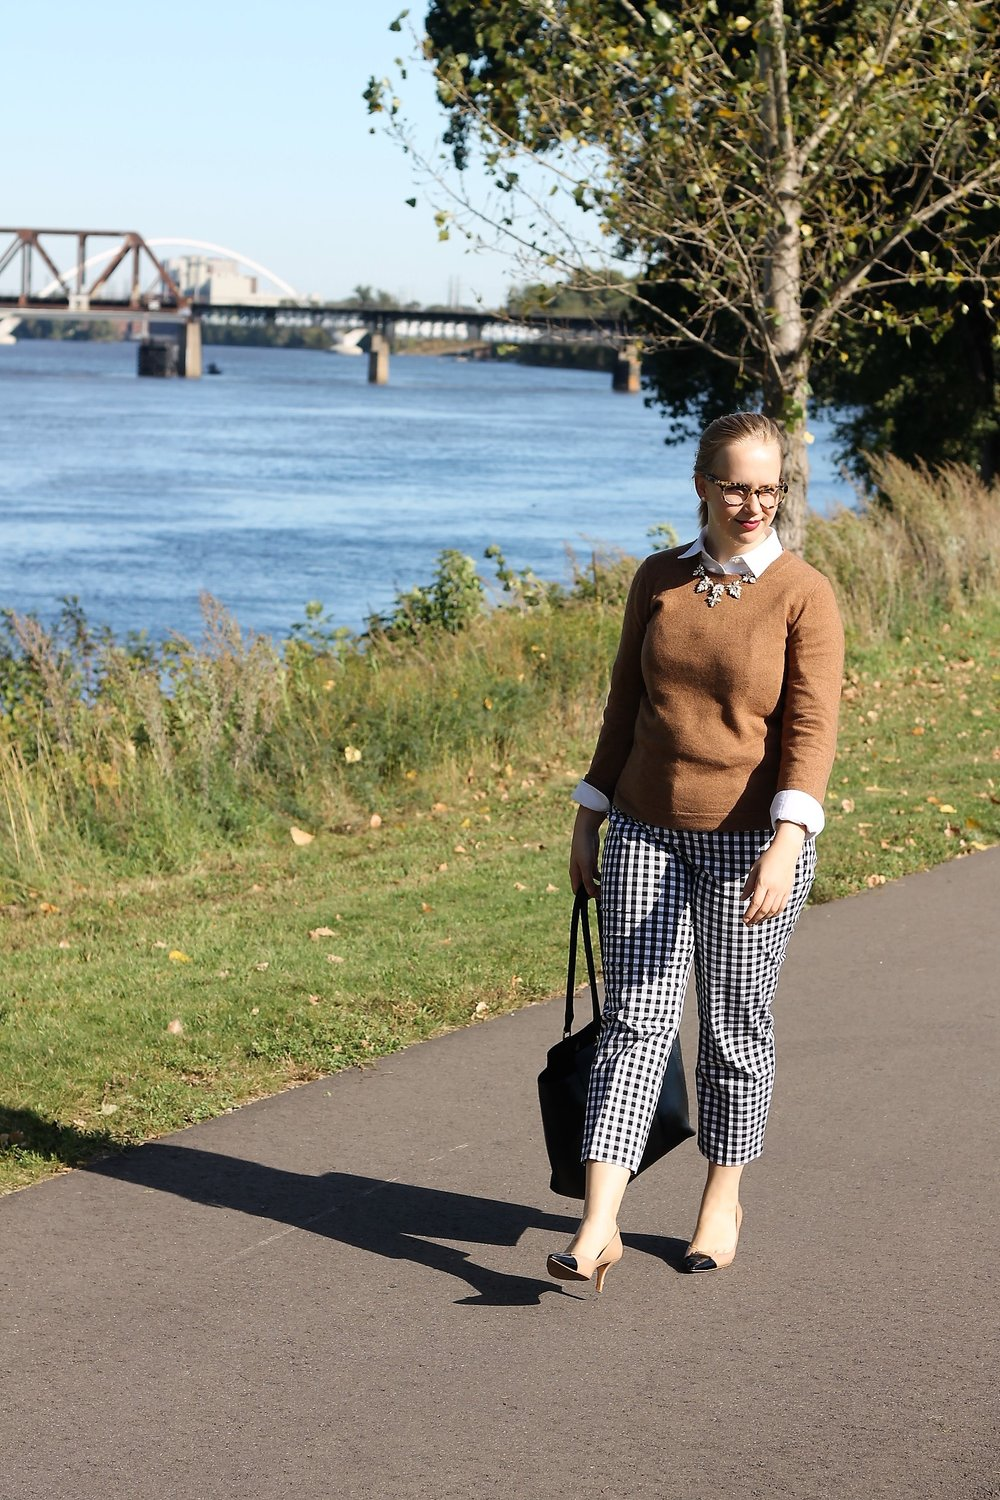 Check Yourself | Patterned Pants and Camel Sweater | Work & What She Wore